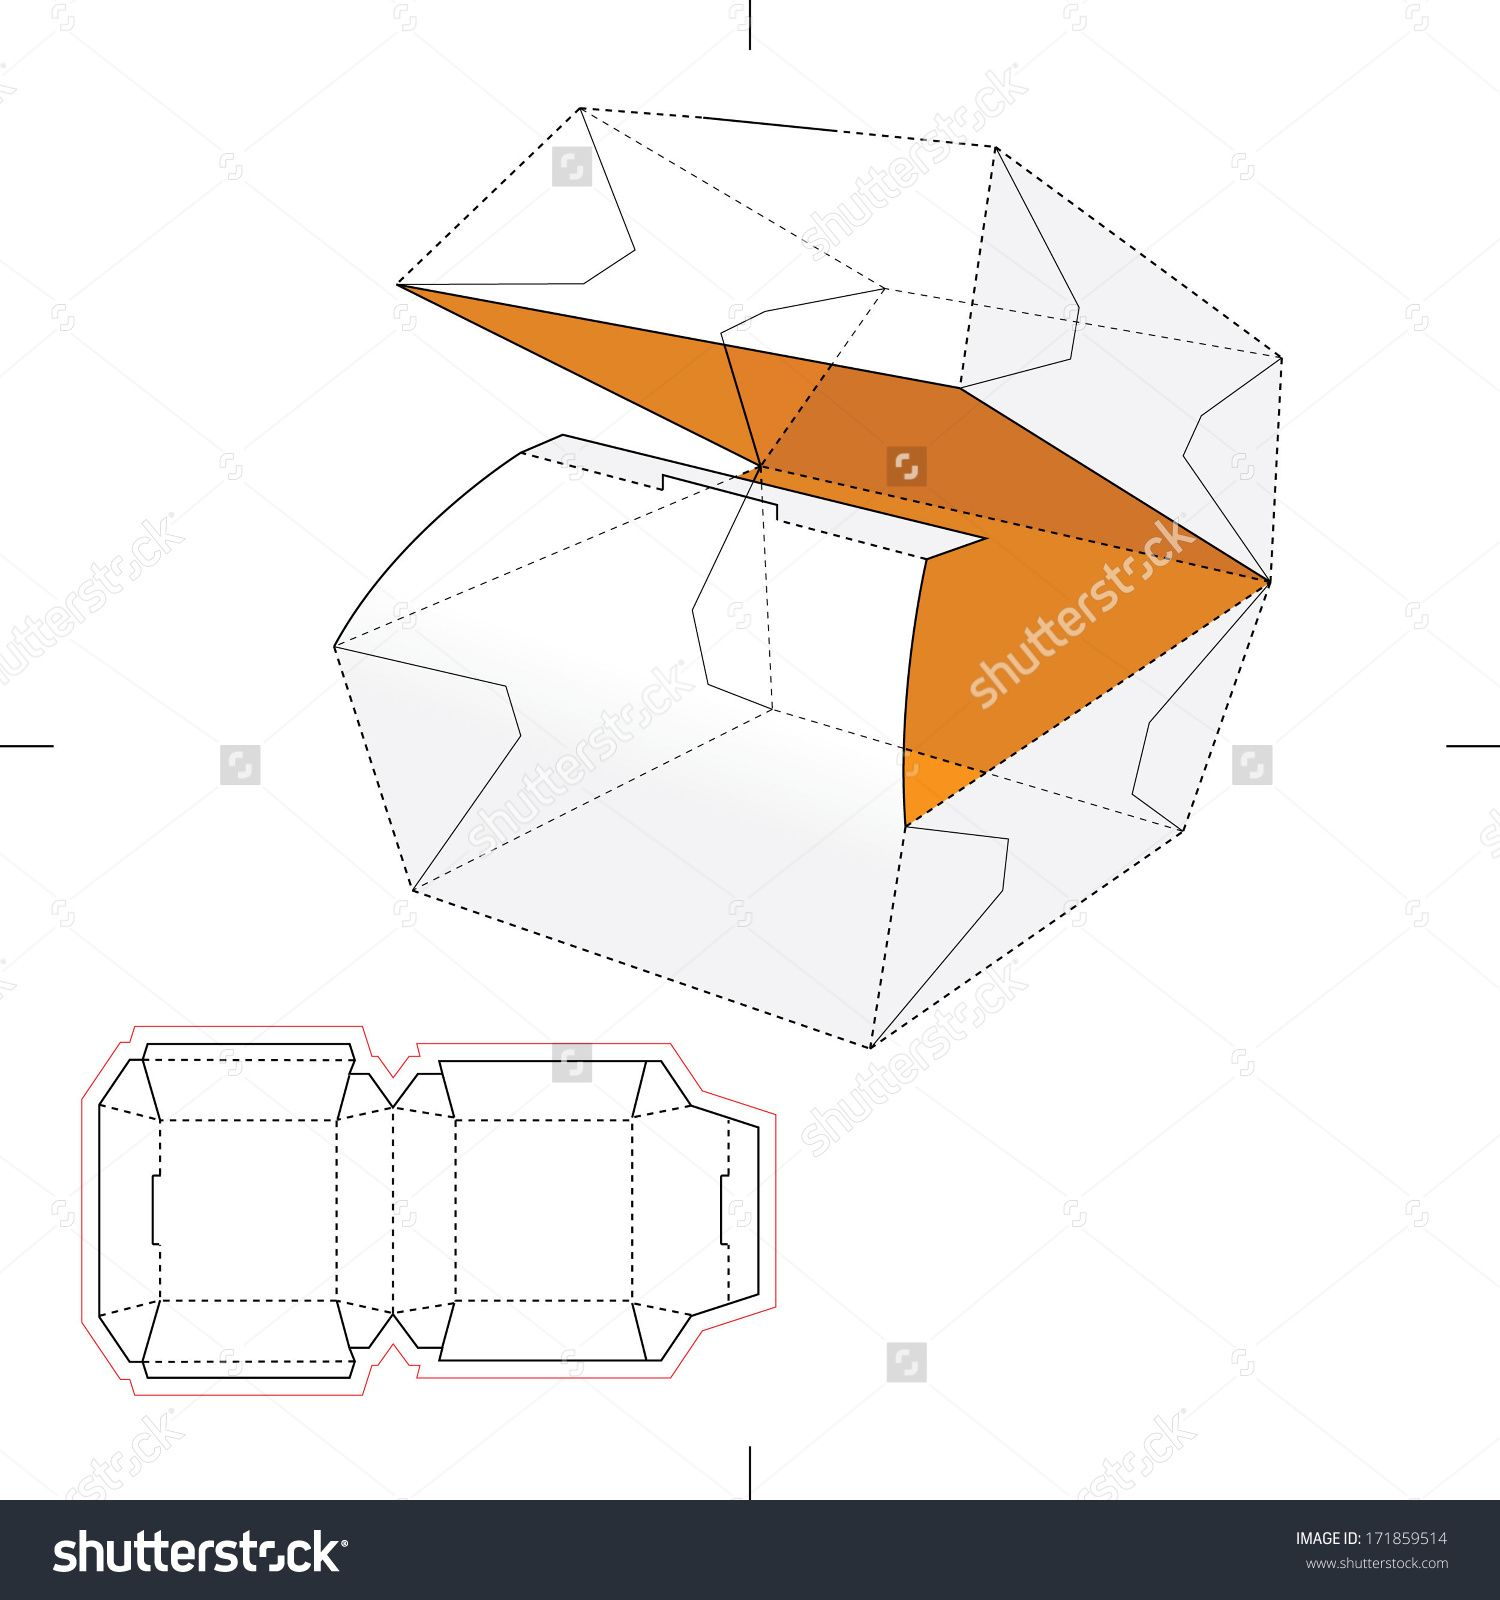 Squared Fast-Food Box With Blueprint Layout Stock Vector ...